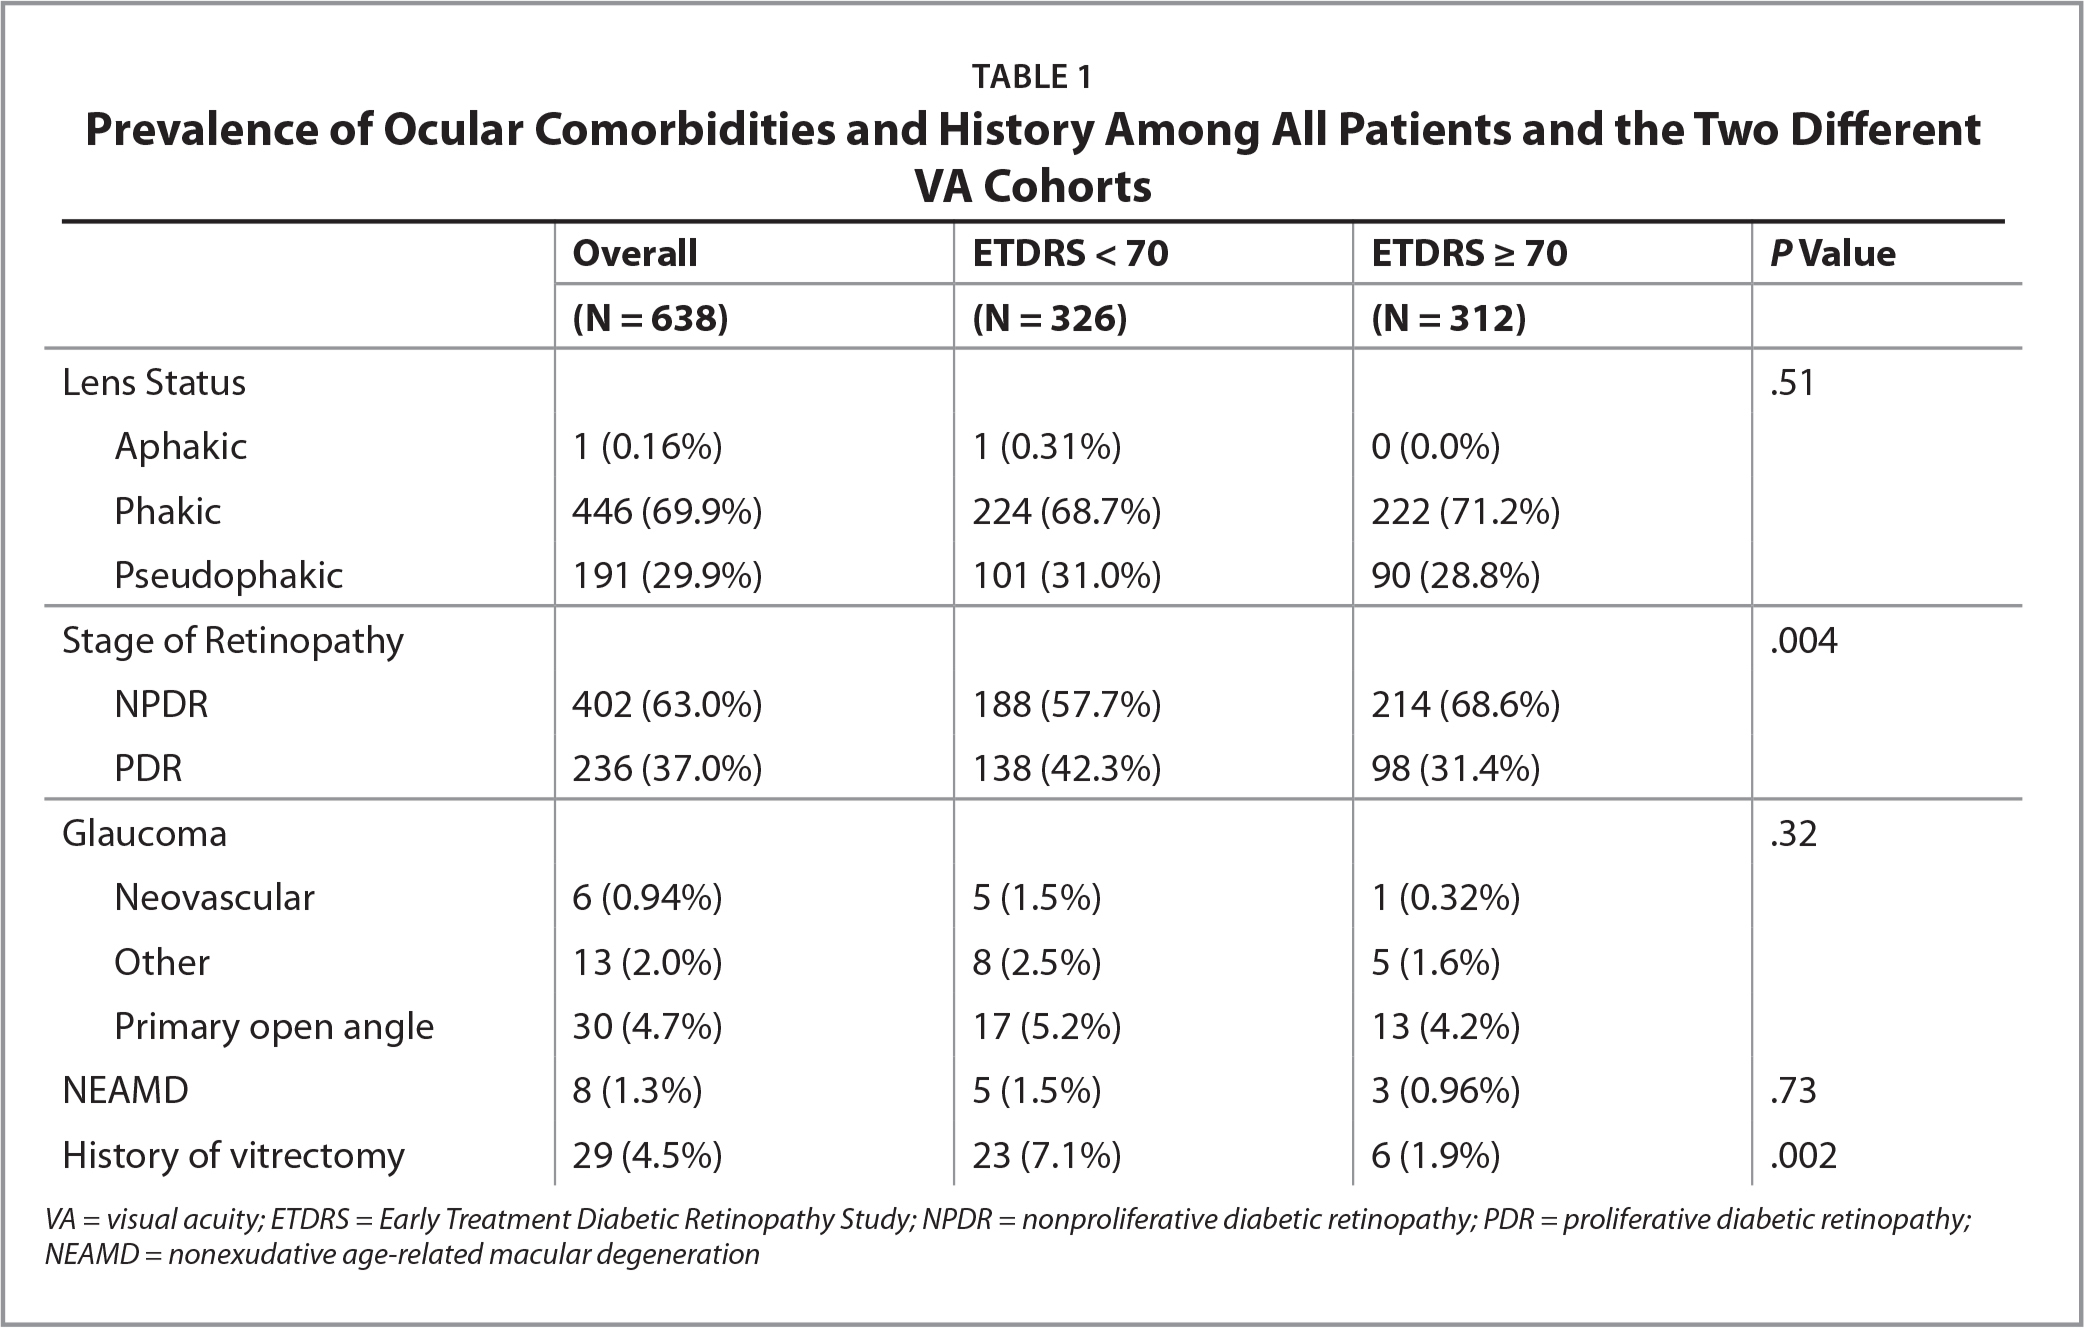 Prevalence of Ocular Comorbidities and History Among All Patients and the Two Different VA Cohorts